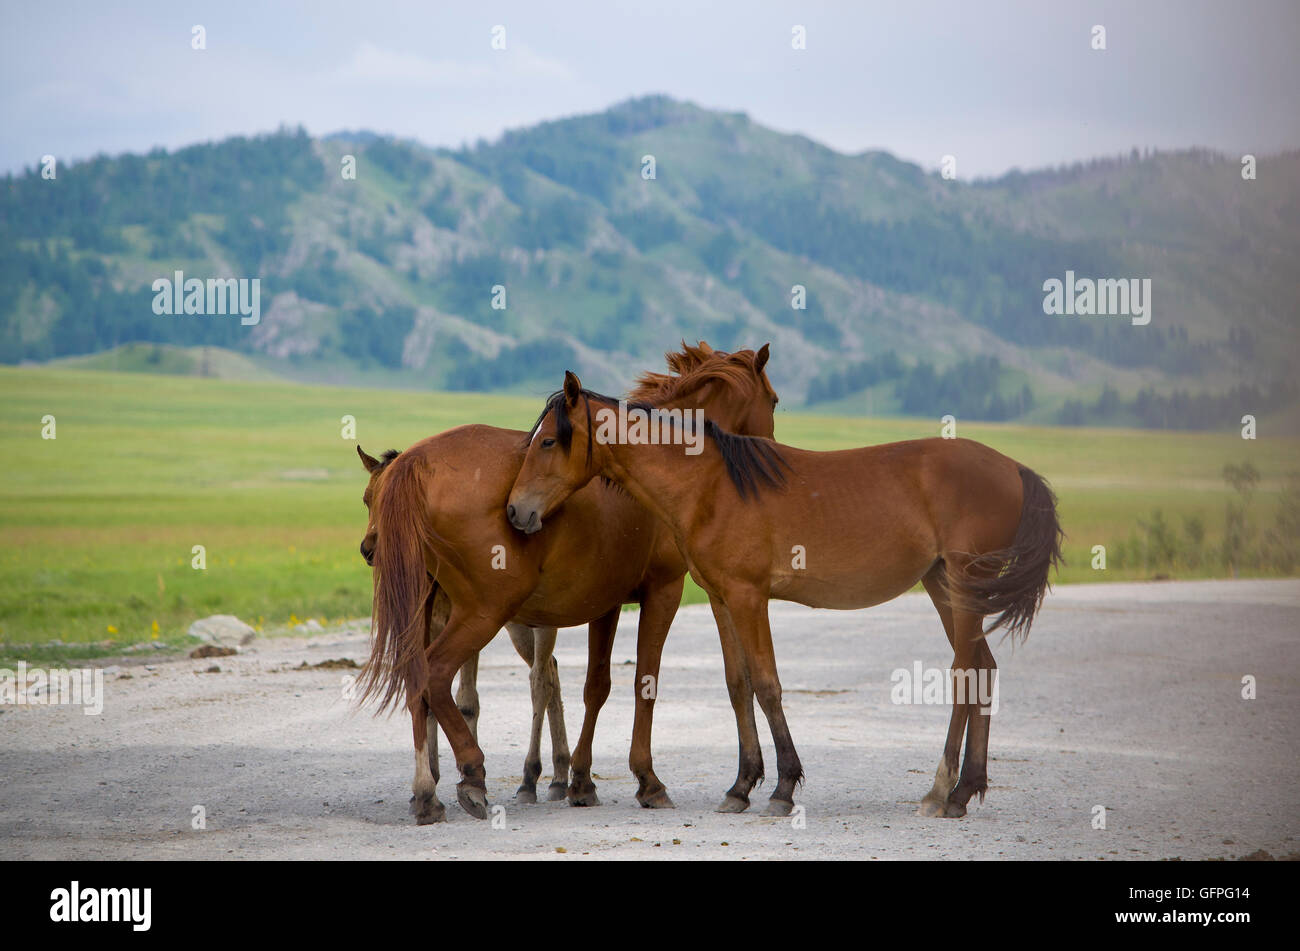 pets of a horse stand against mountains,a family, a foal, a horse, a landscape, a mare, against, animal, house, - Stock Image